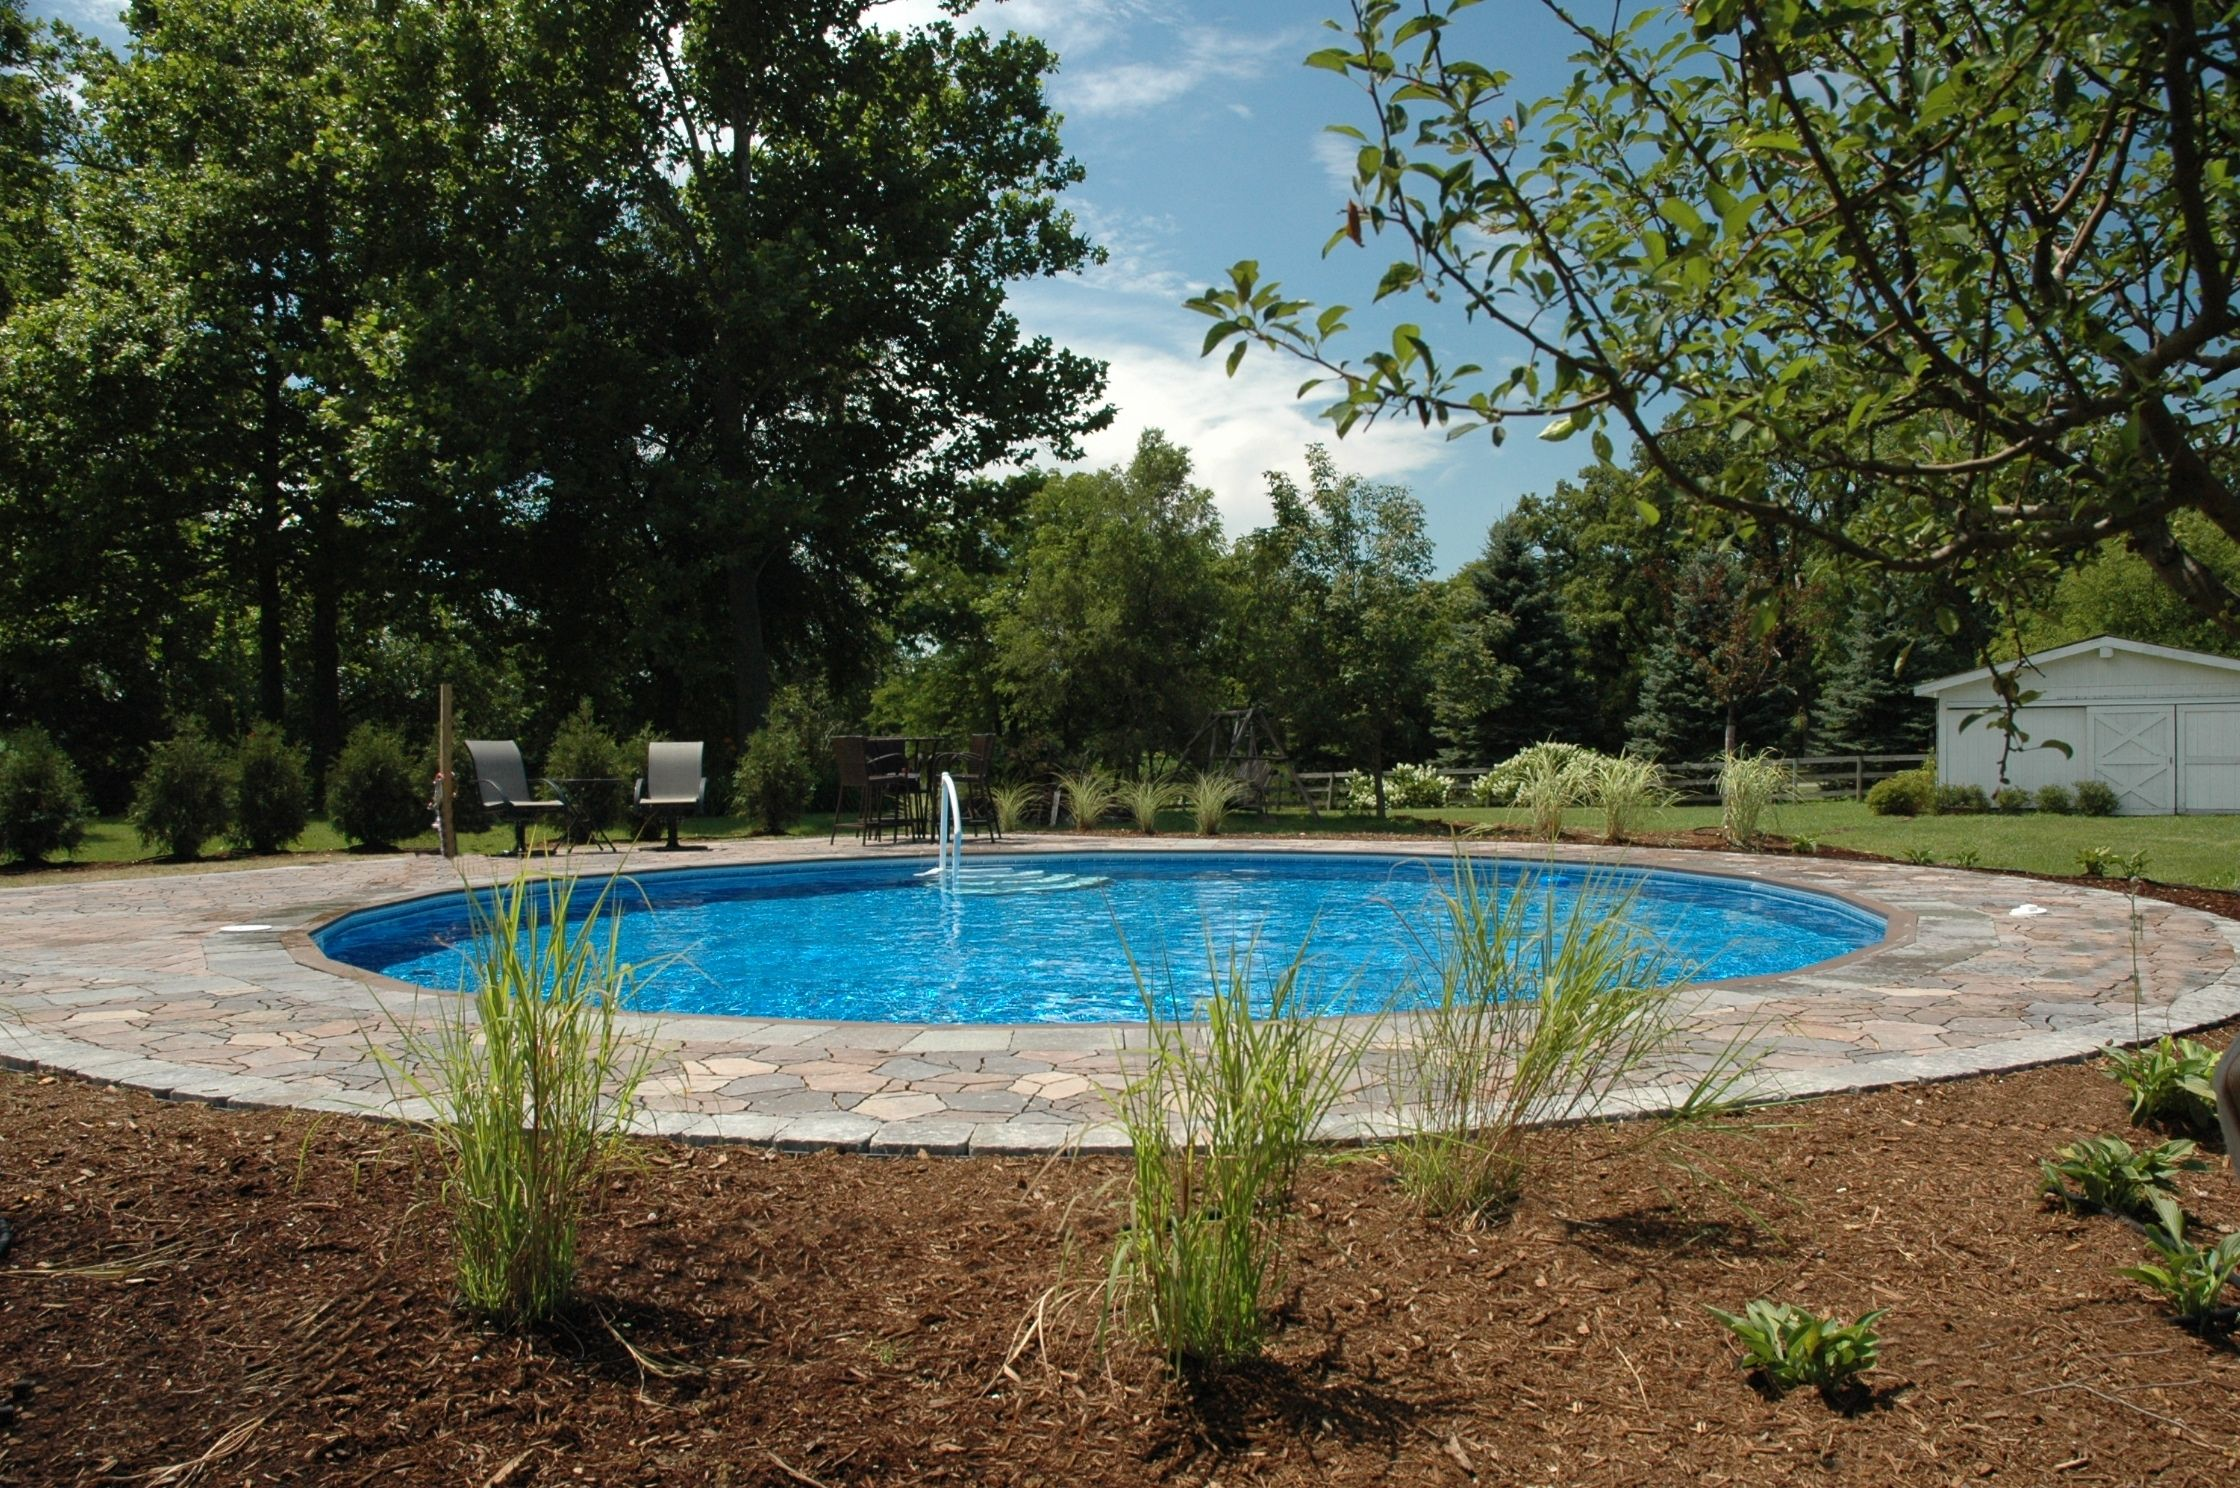 Fabcote ultimate pool inground installation fabcote for Inground swimming pool installation